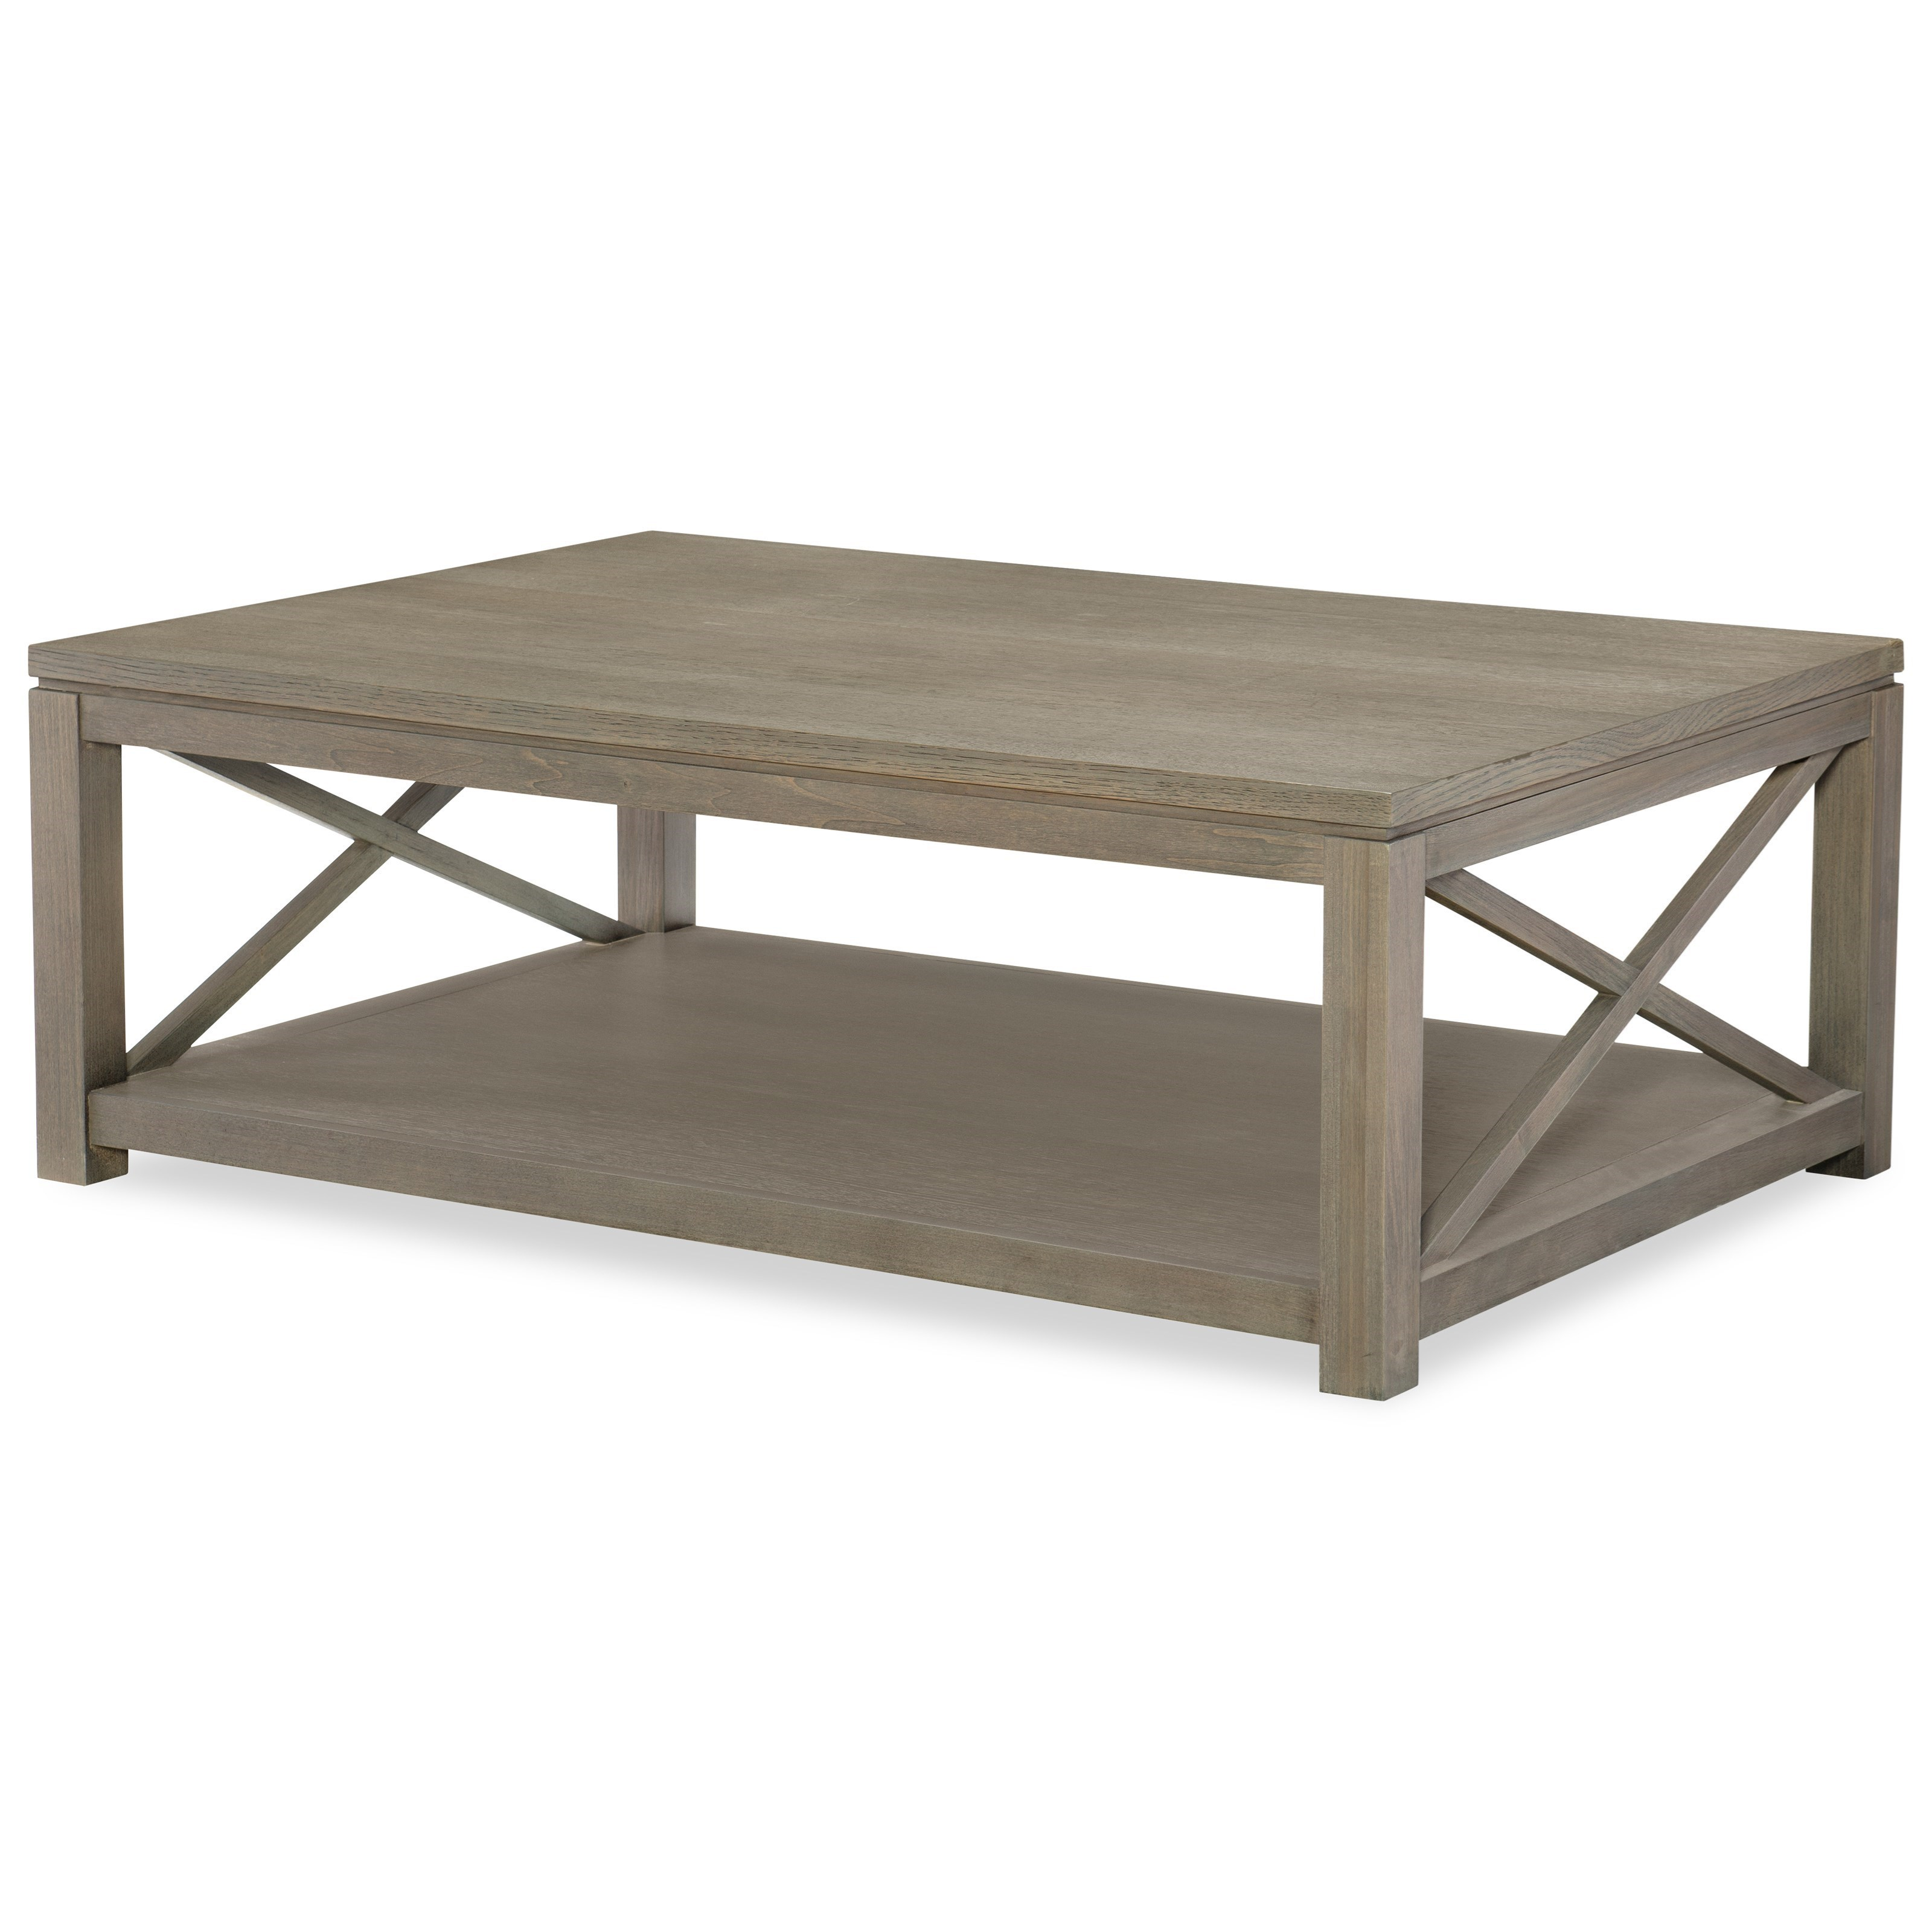 Rachael Ray Home High Line Cocktail Table - Item Number: 6000-501